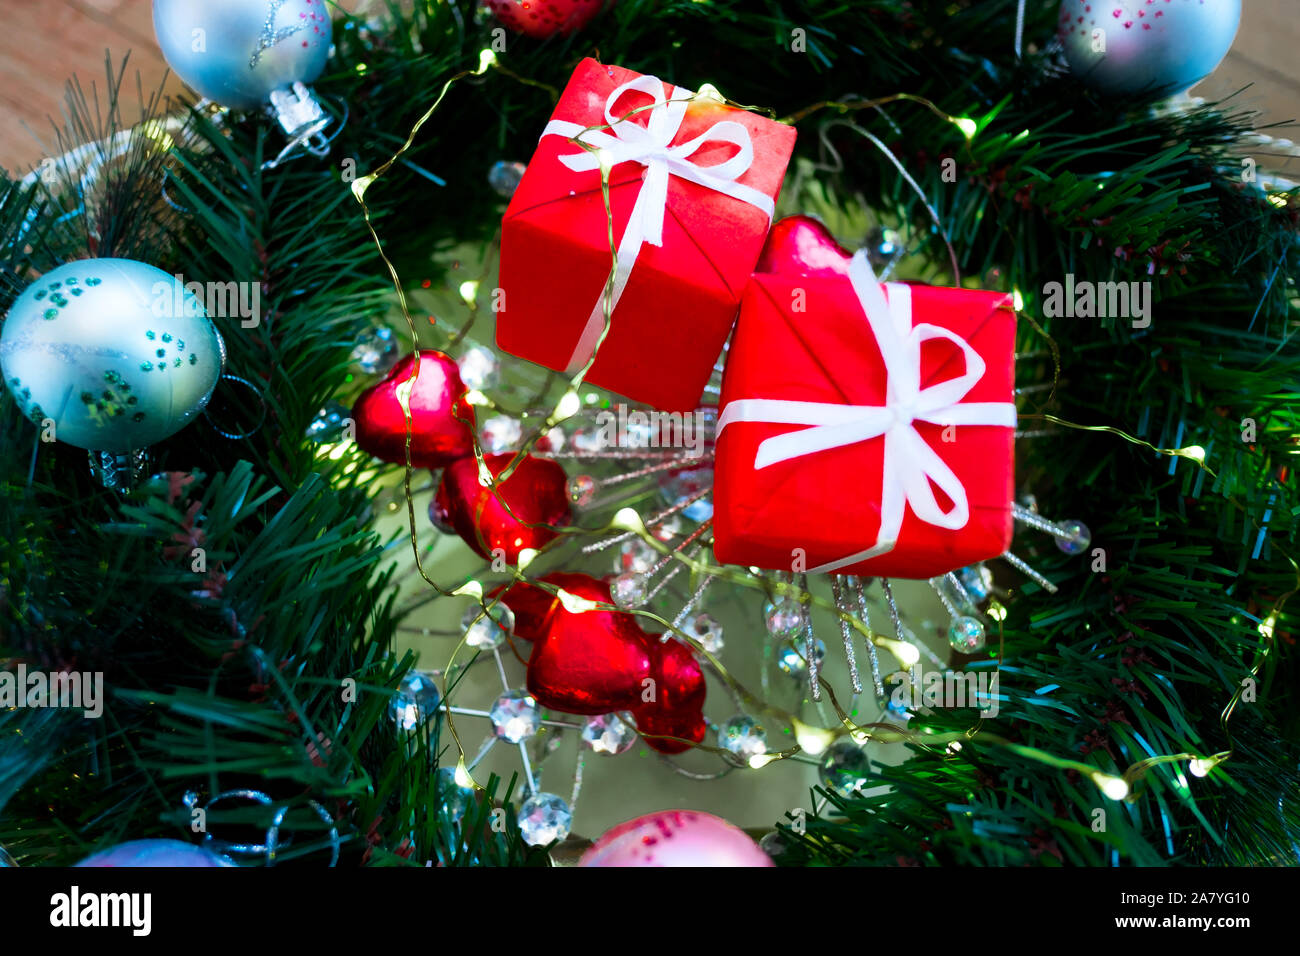 Decorated Christmas Tree Closeup With Red Christmas Gifts With White Ribbon Heart Shaped Sweets And A Lot Of Lights Glitter And Blurred Bokeh Stock Photo Alamy